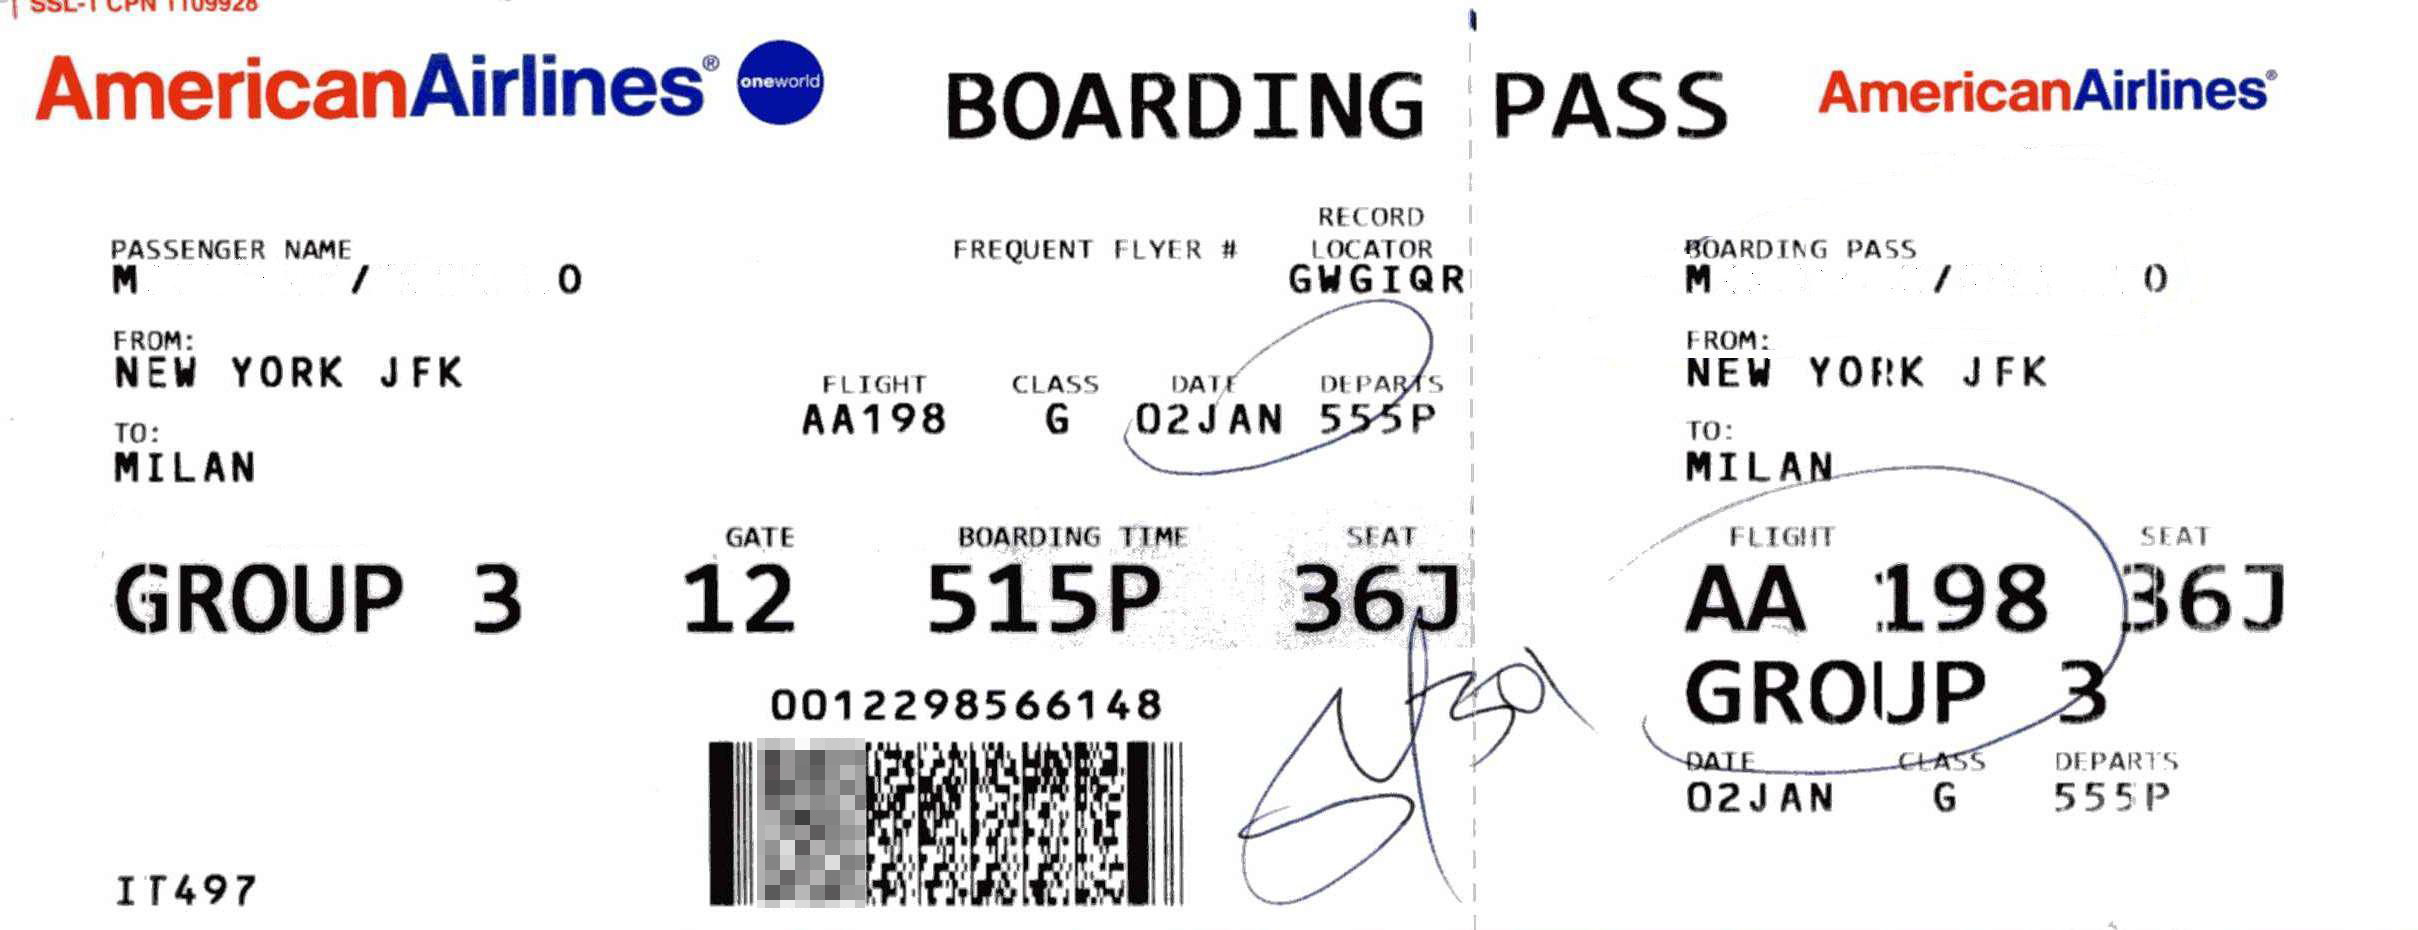 American_Airlines_boarding_pass_AA_198.jpg